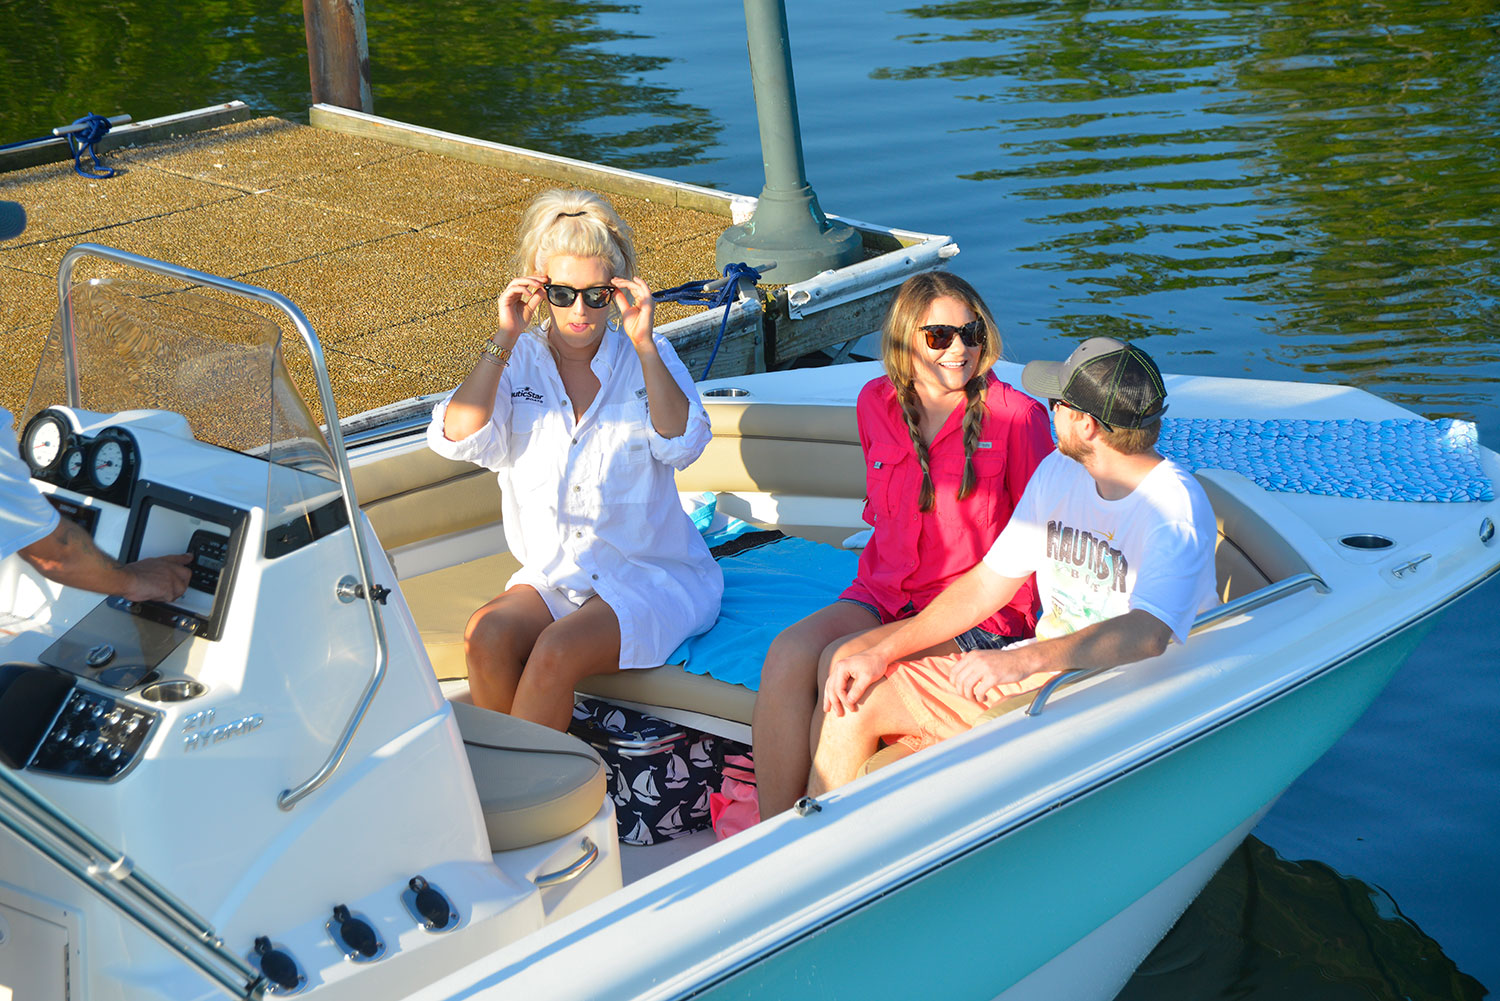 One man and woman talking while another woman relaxes on the NauticStar 211 Hybrid